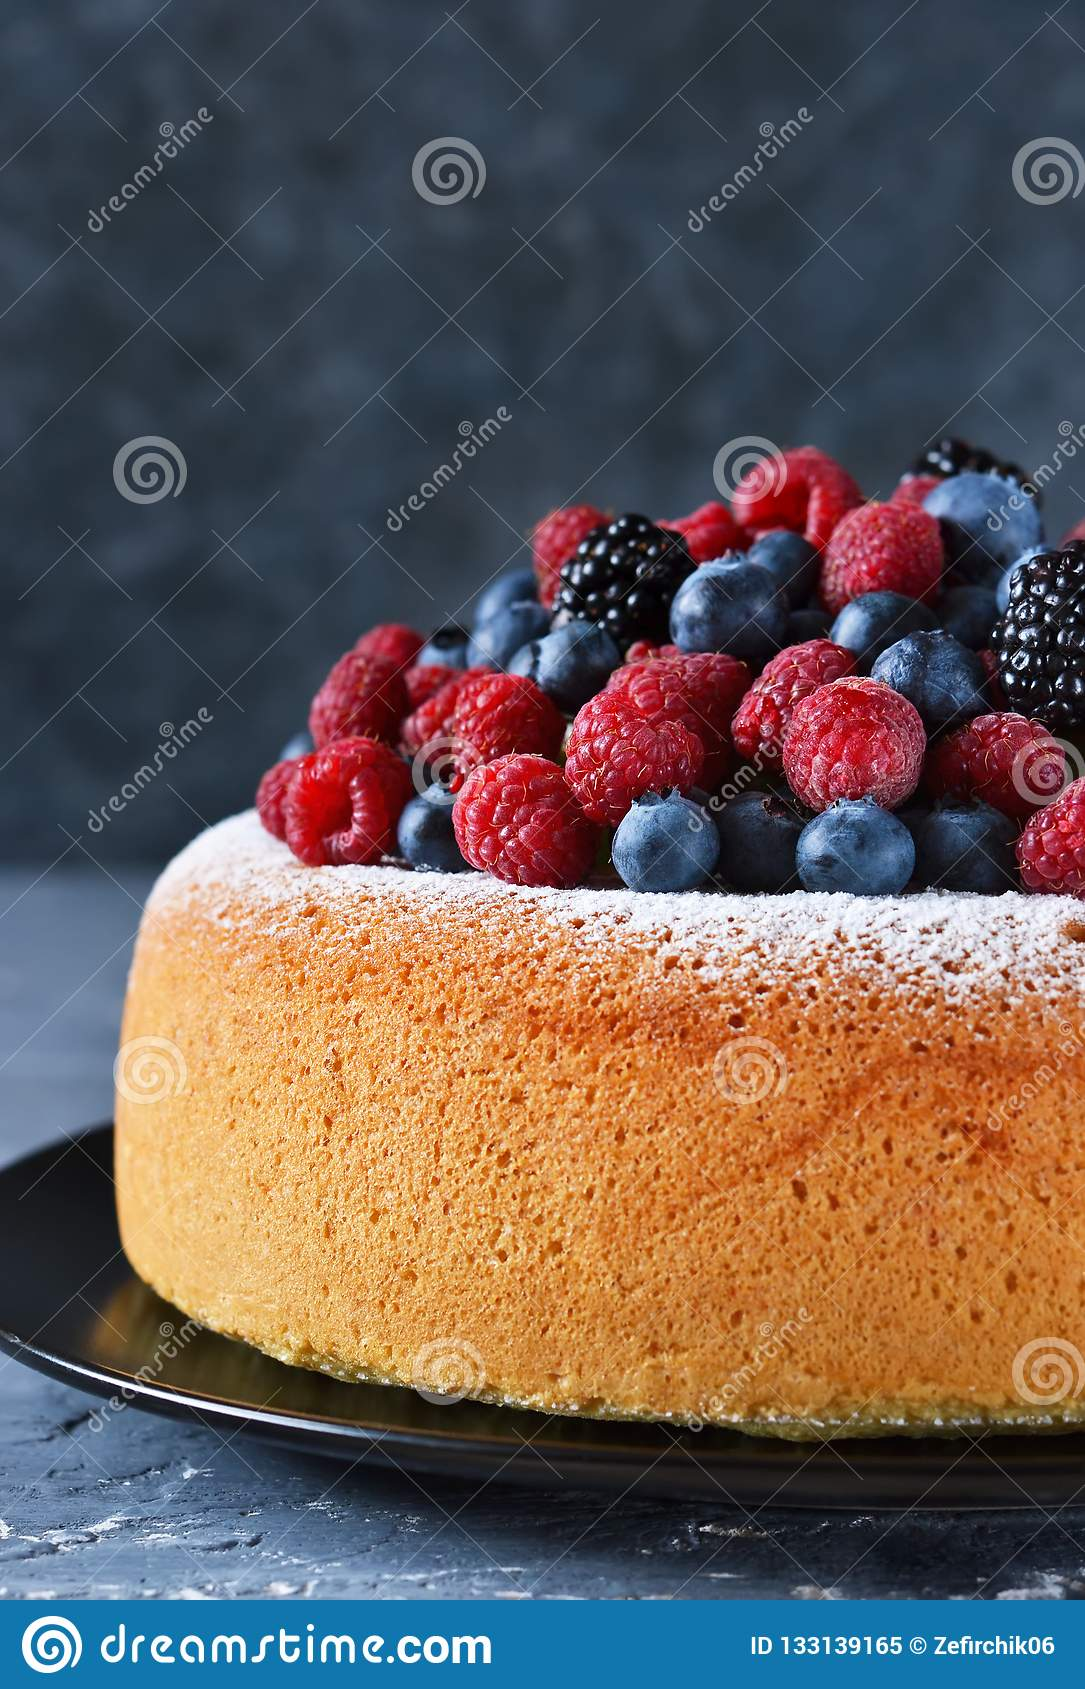 Vanilla cake with creamy cream and berries: blueberries